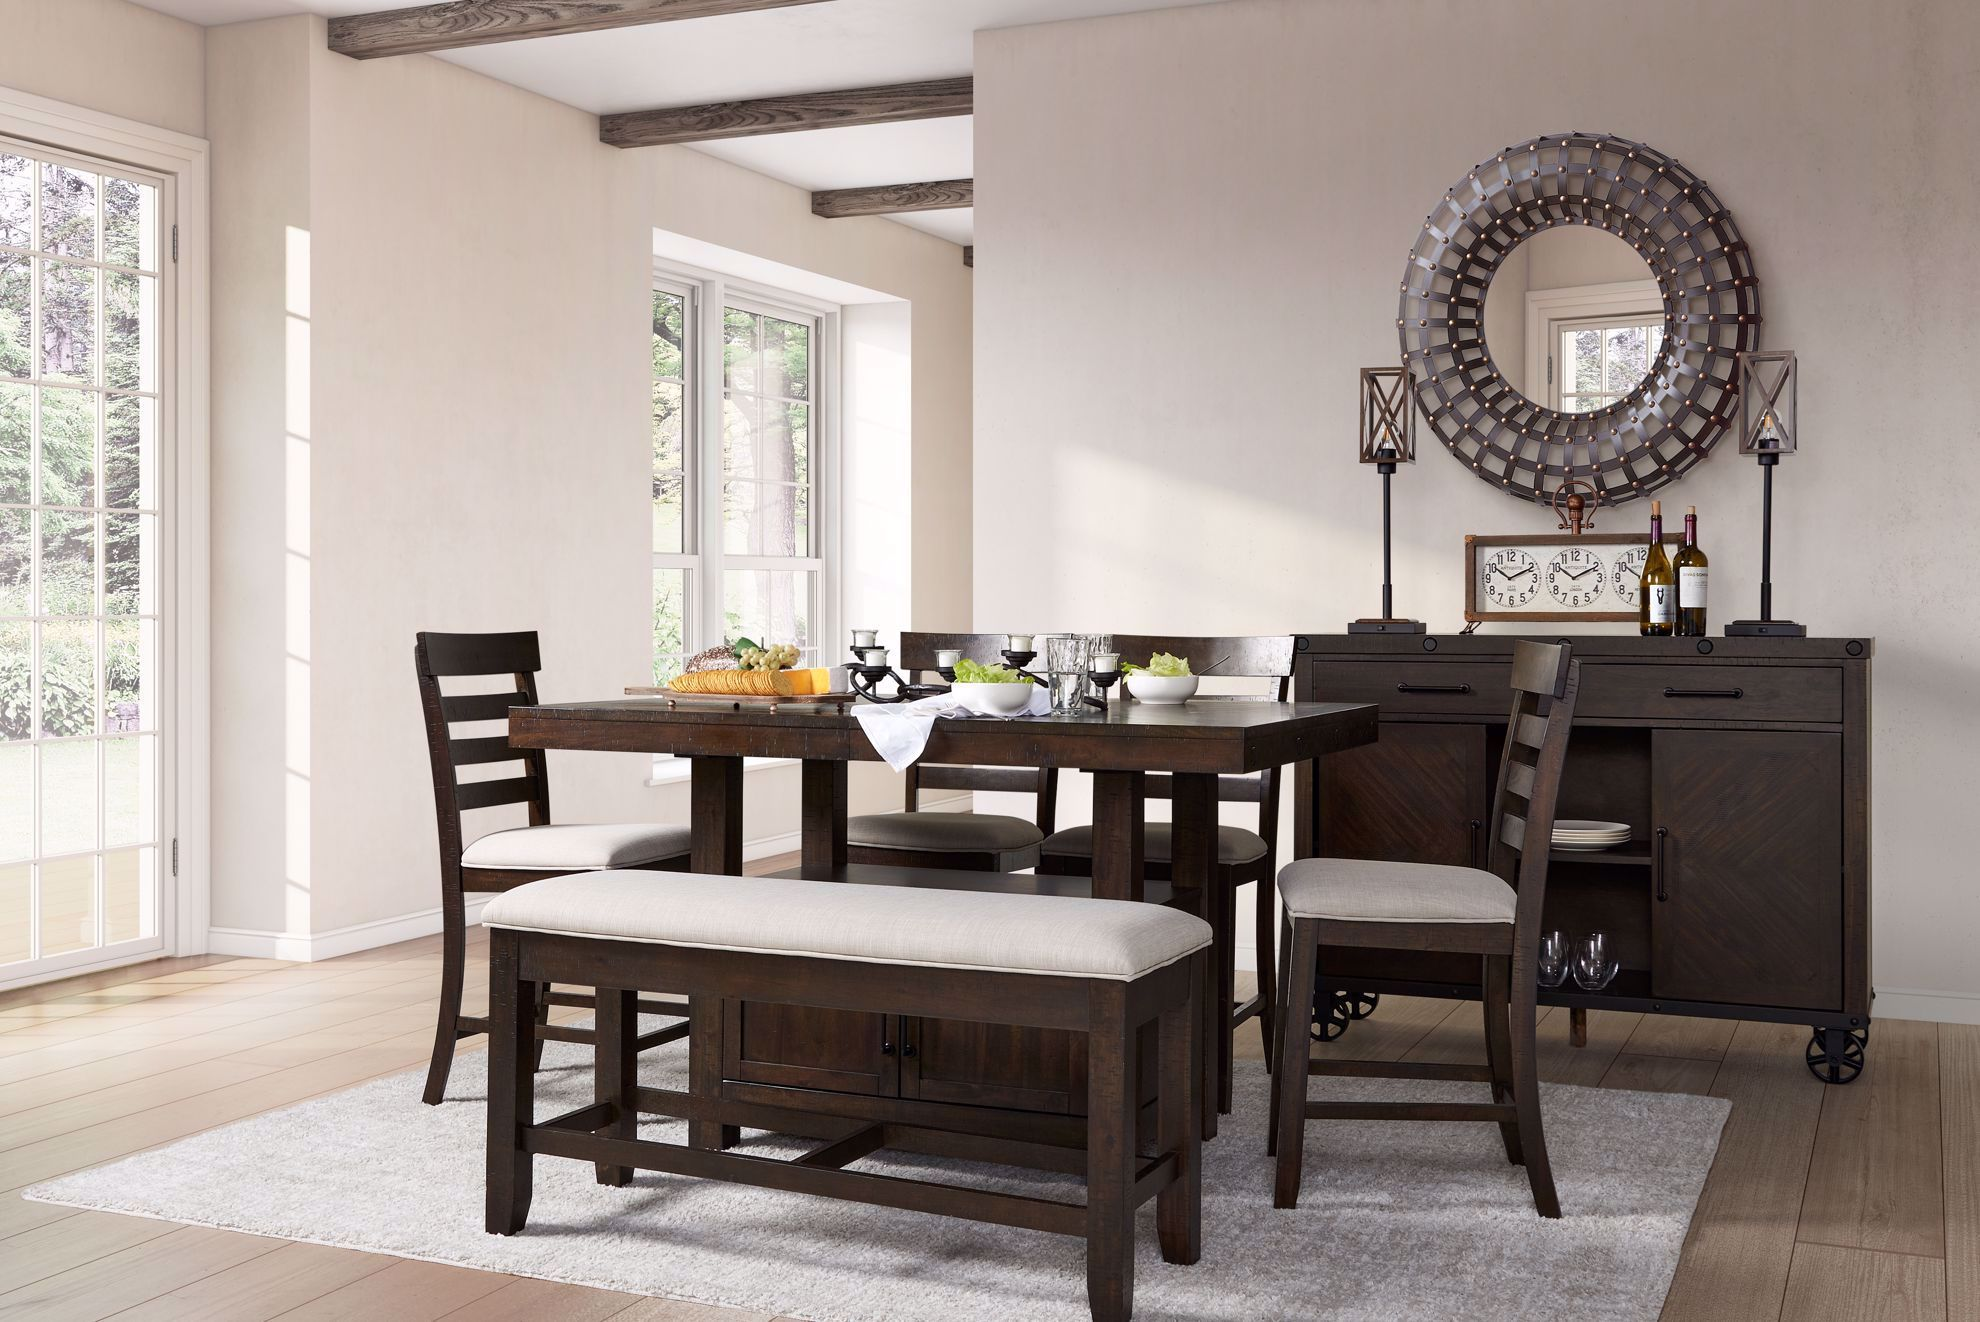 Picture of Colorado Counter Height Table with Four Chairs and Bench